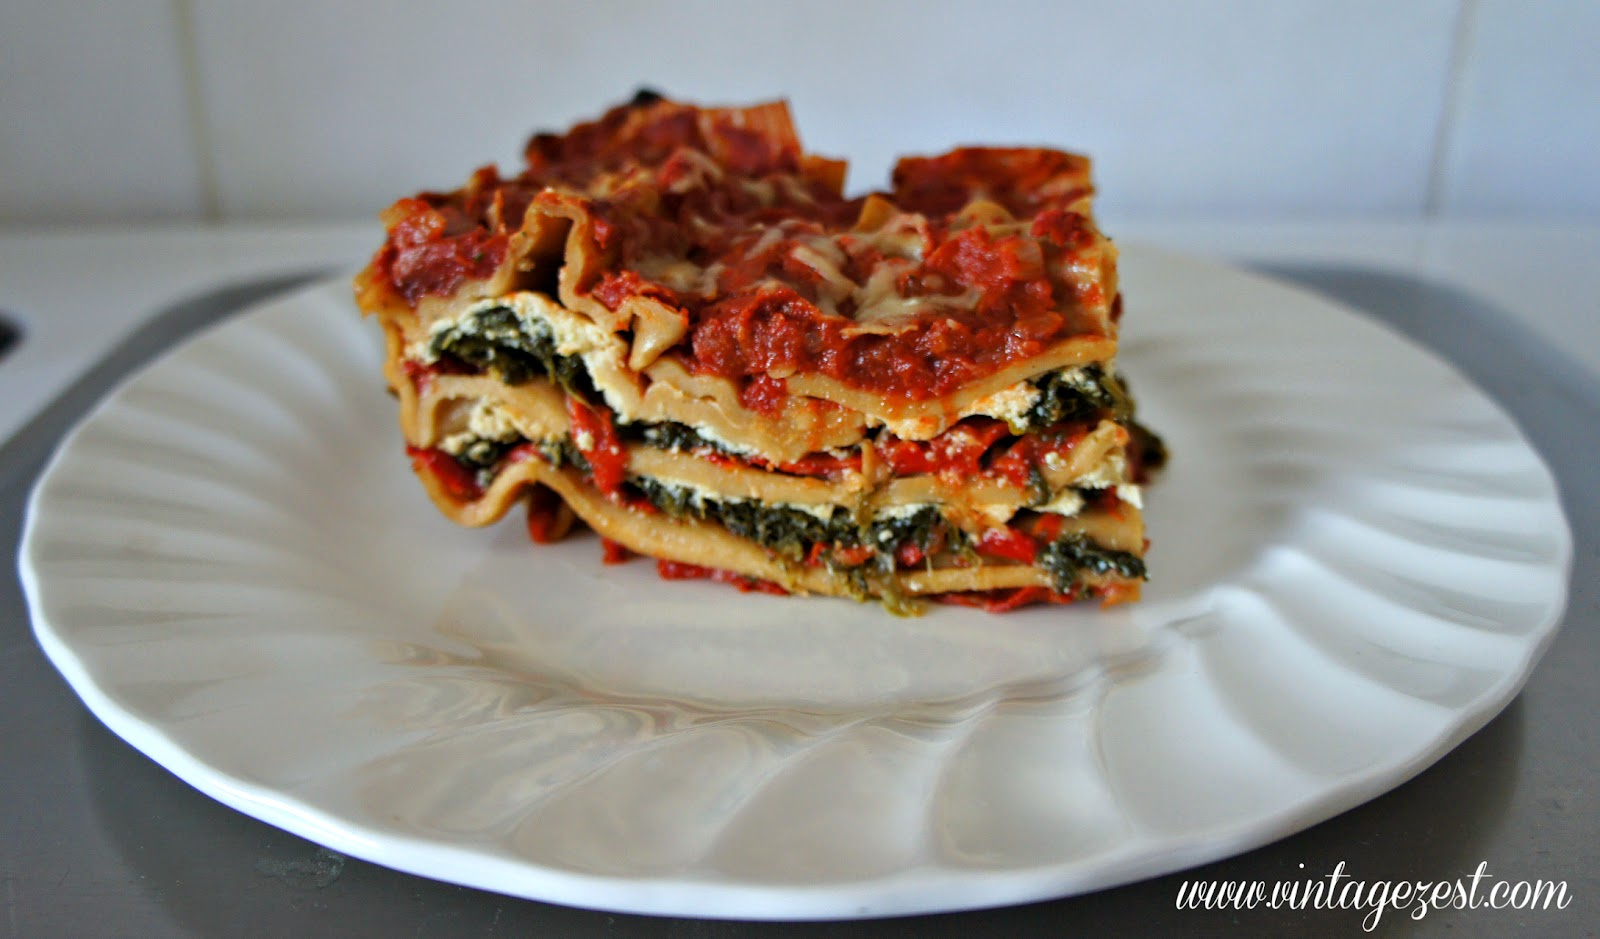 Spinach+and+Roasted+Red+Pepper+Lasagna+10.jpg